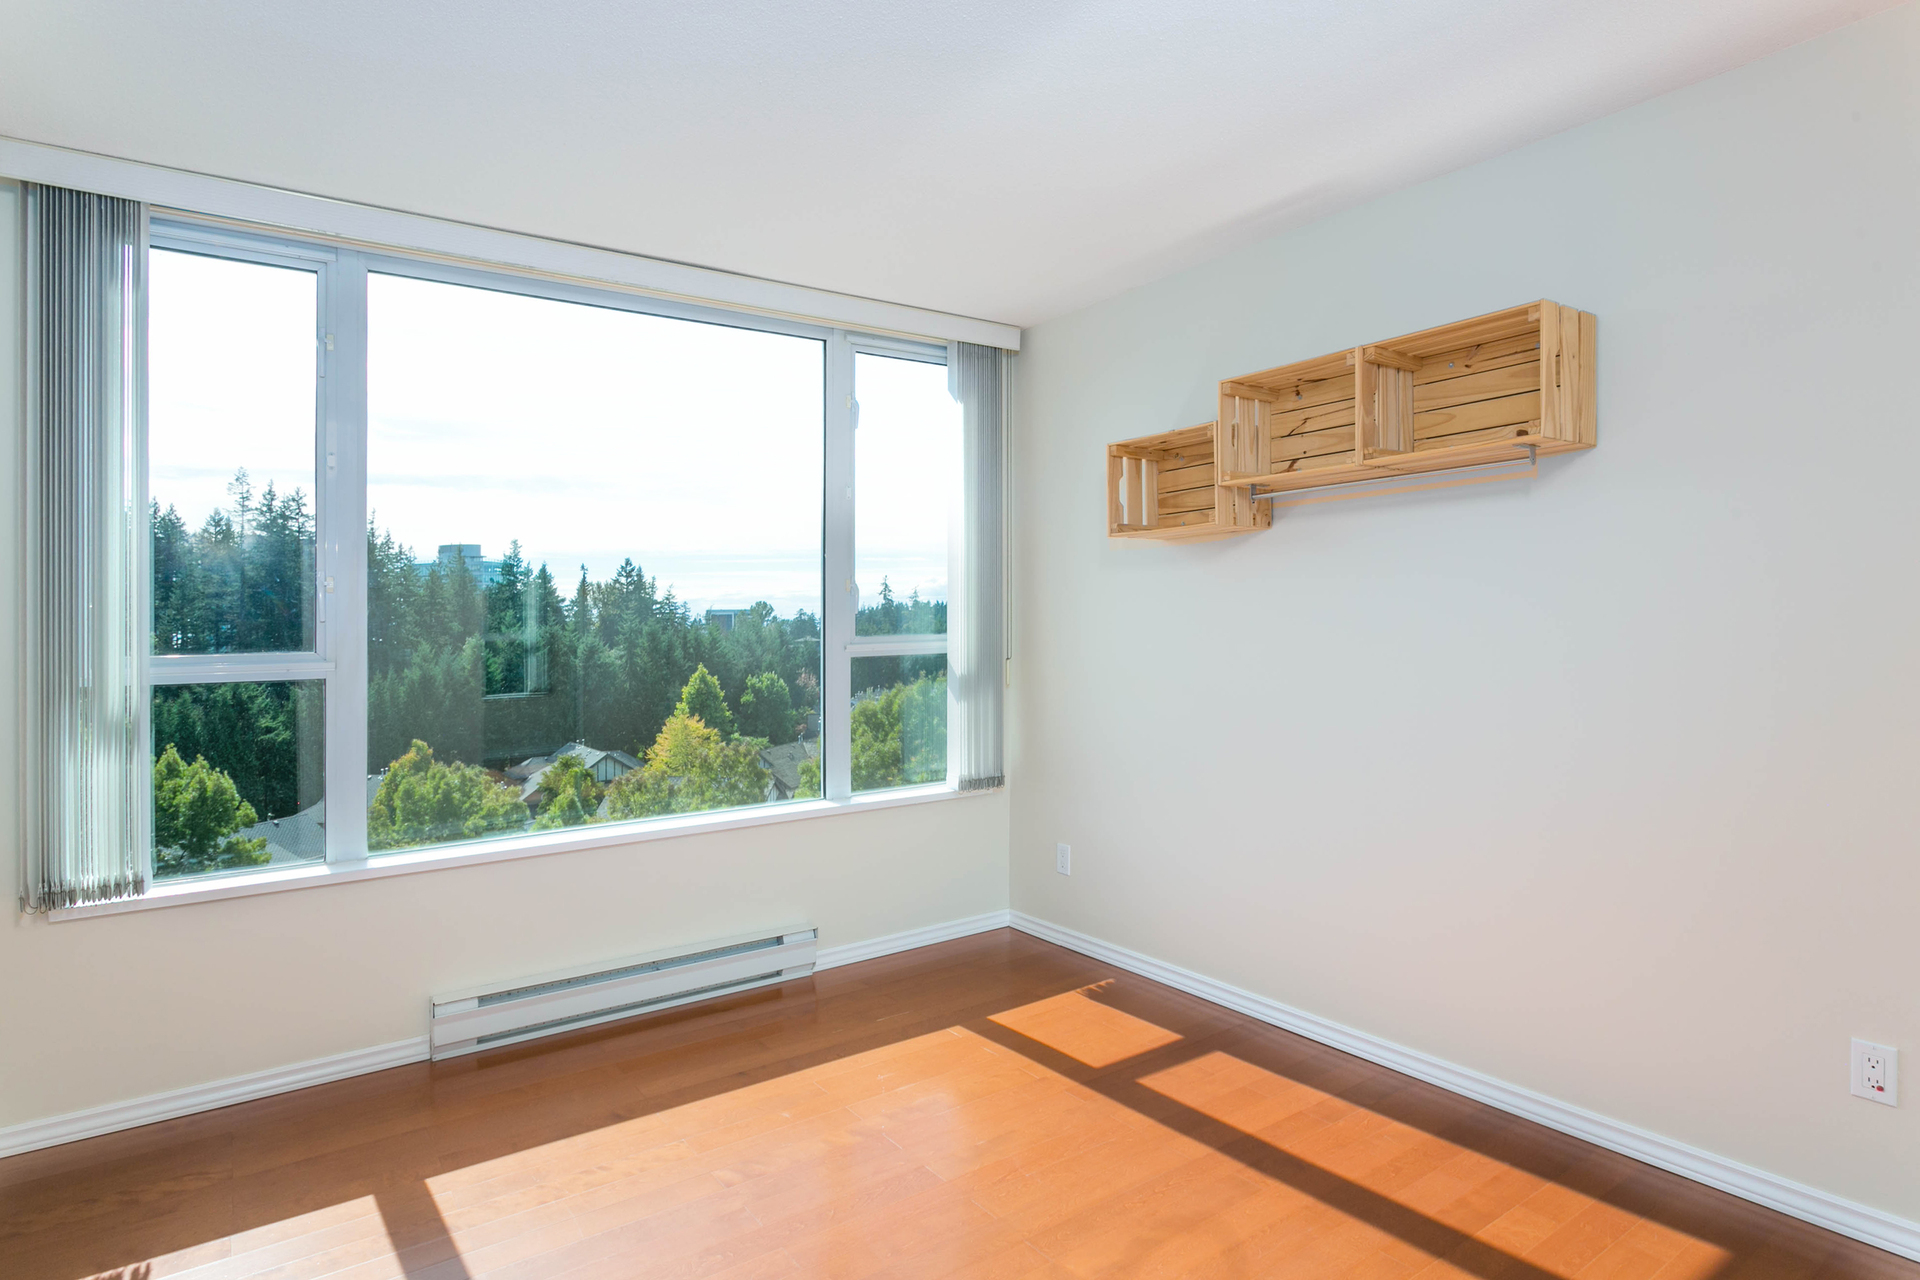 1j6a5232 at 907 - 5615 Hampton Place, University VW, Vancouver West